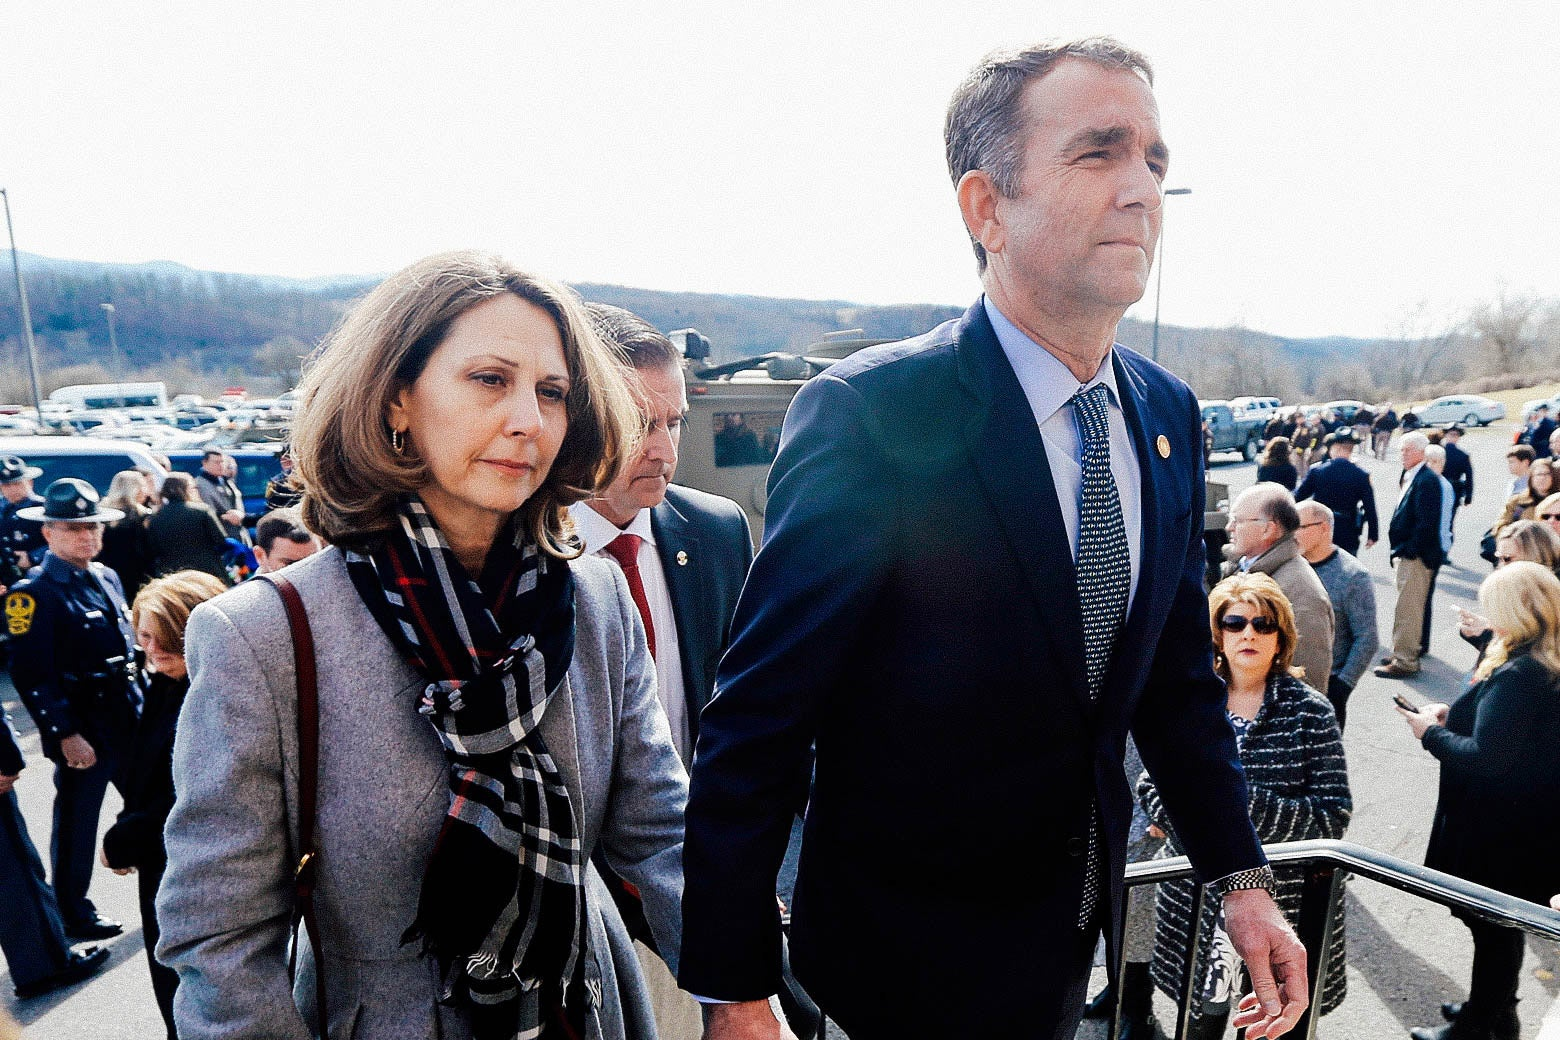 Virginia first lady Pam Northam and Gov. Ralph Northam hold hands as they leave the funeral for Virginia State Trooper Lucas B. Dowell on Feb. 9 in Chilhowie, Virginia.